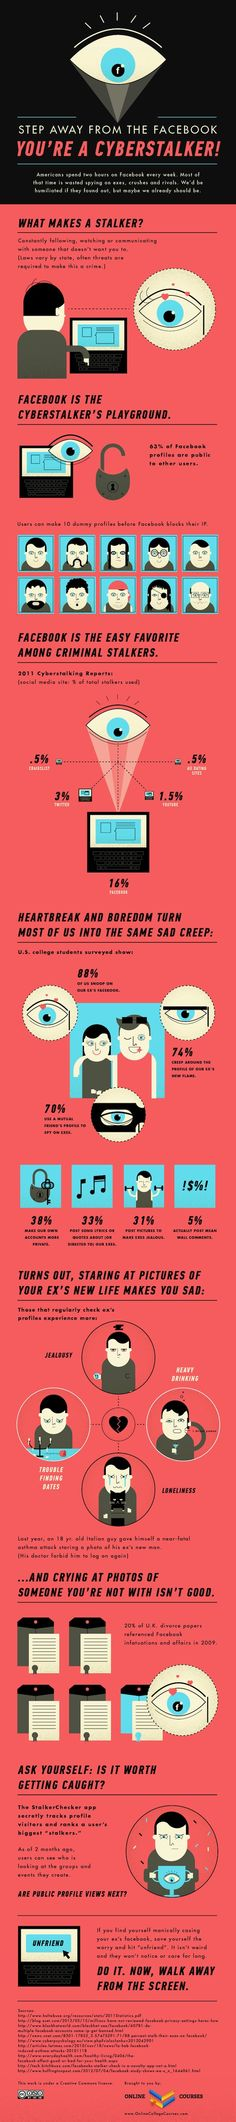 Step away from the FaceBook you're a cyberstalker! #infographic